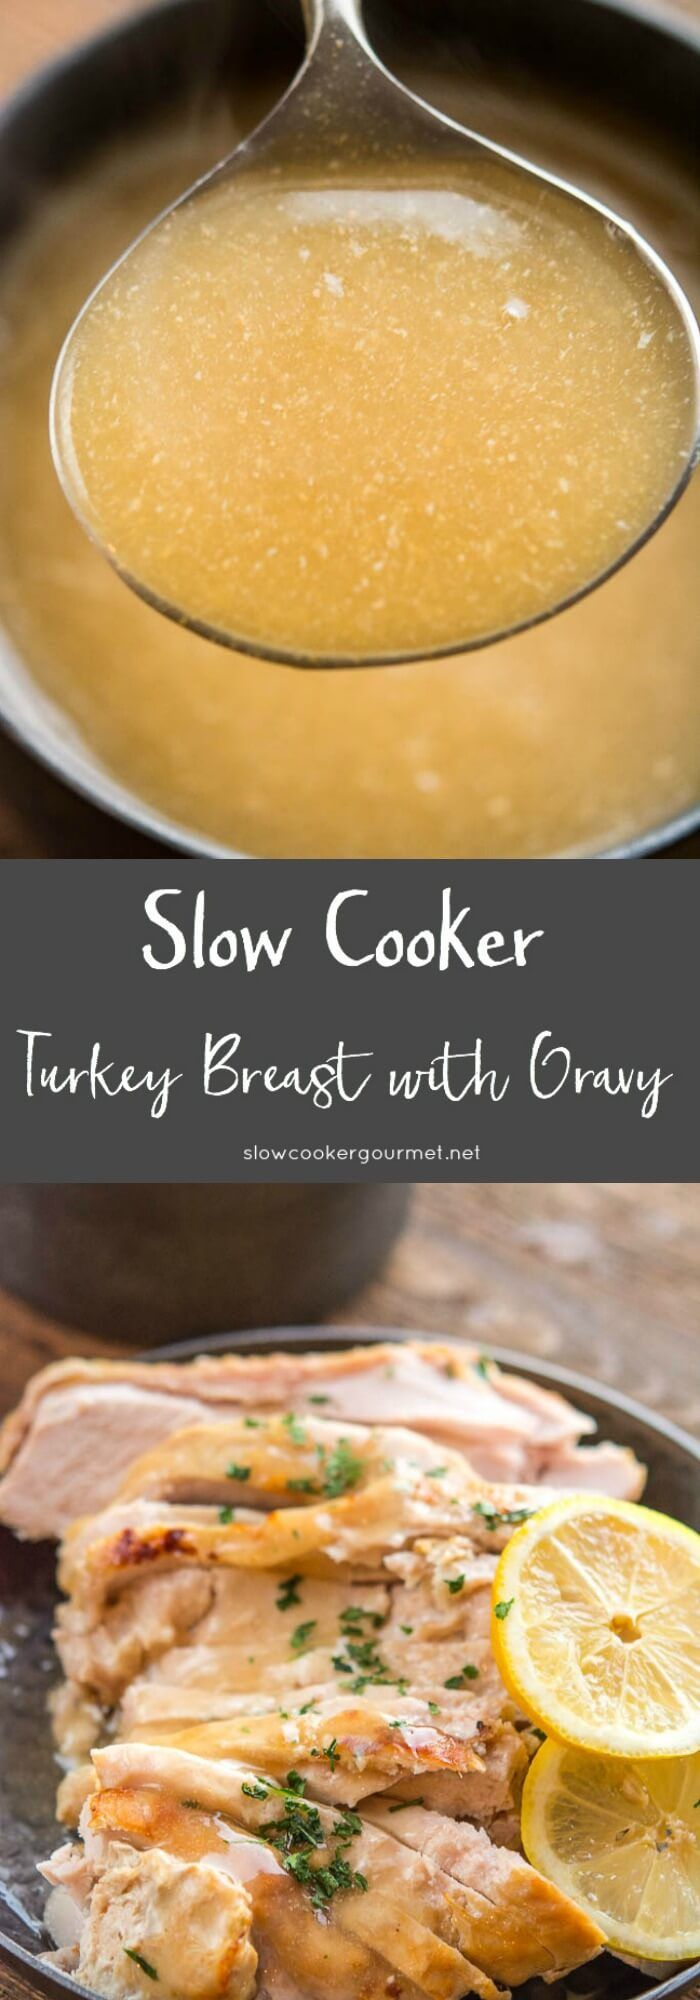 Slow Cooker Turkey Breast with Gravy - family meal idea made right in your Crock-Pot.